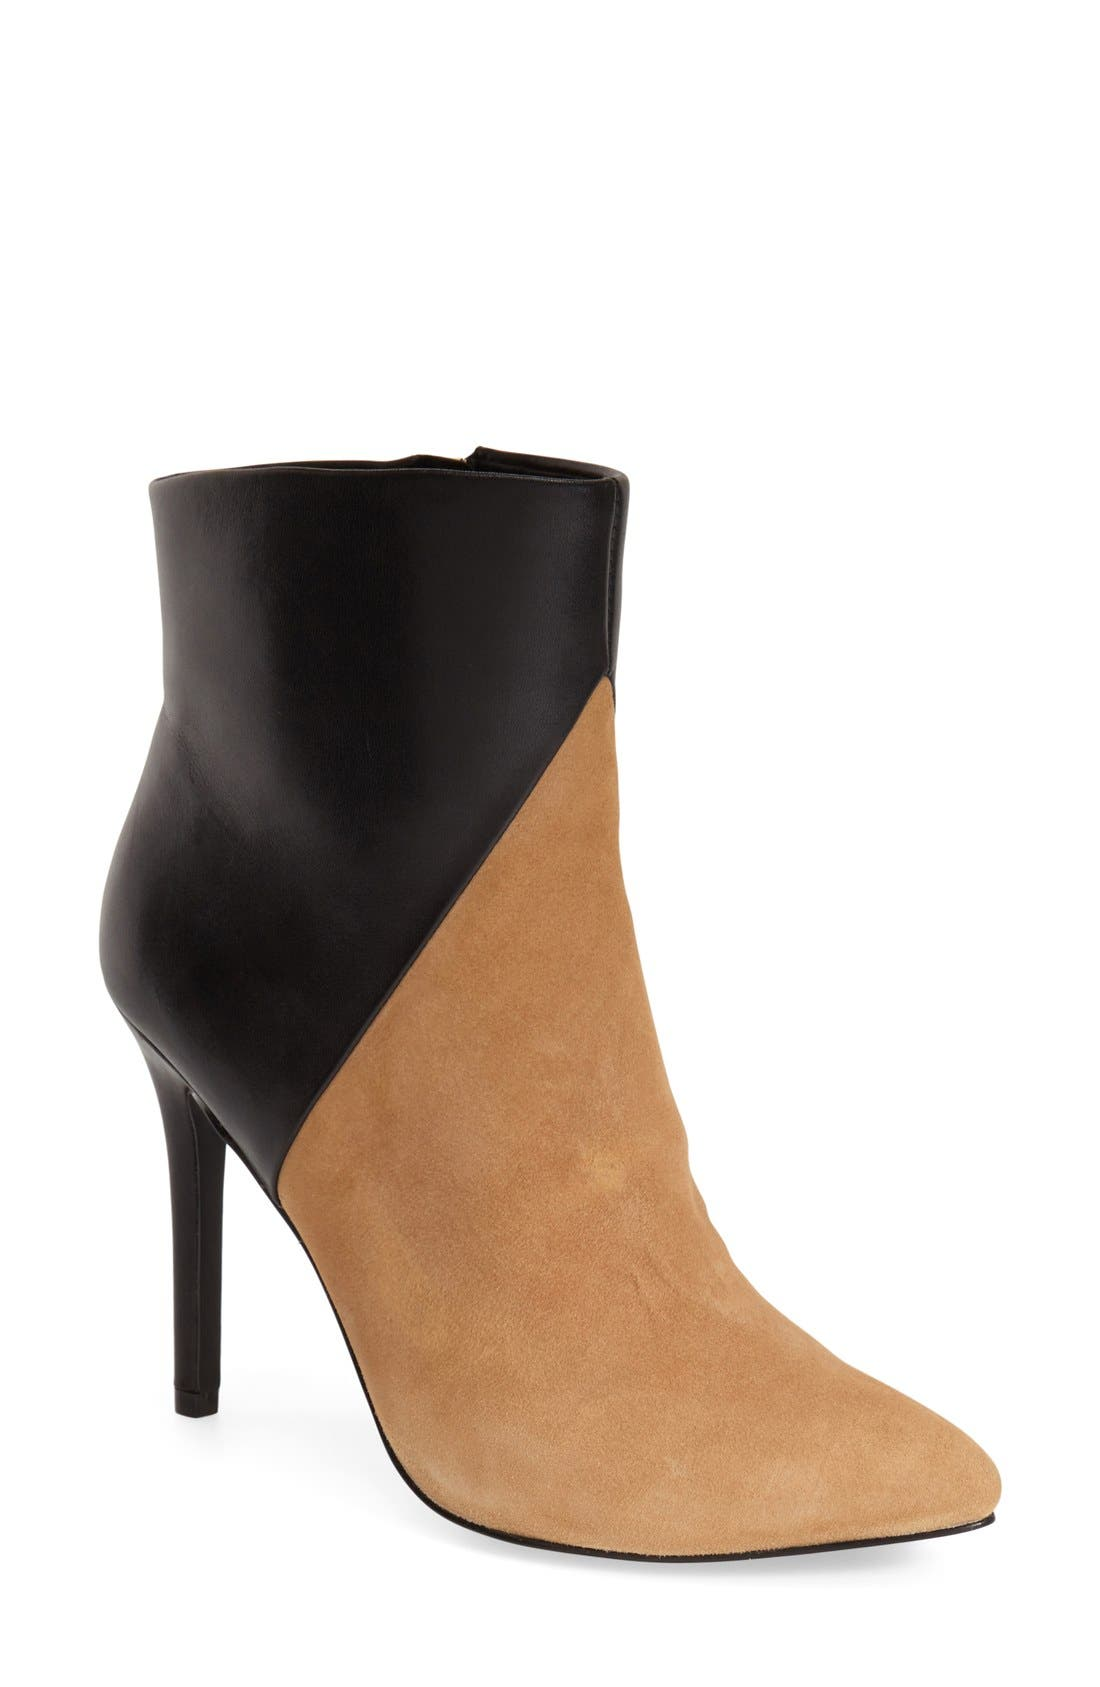 Alternate Image 1 Selected - Charles by Charles David 'Pine' Pointy Toe Bootie (Women)